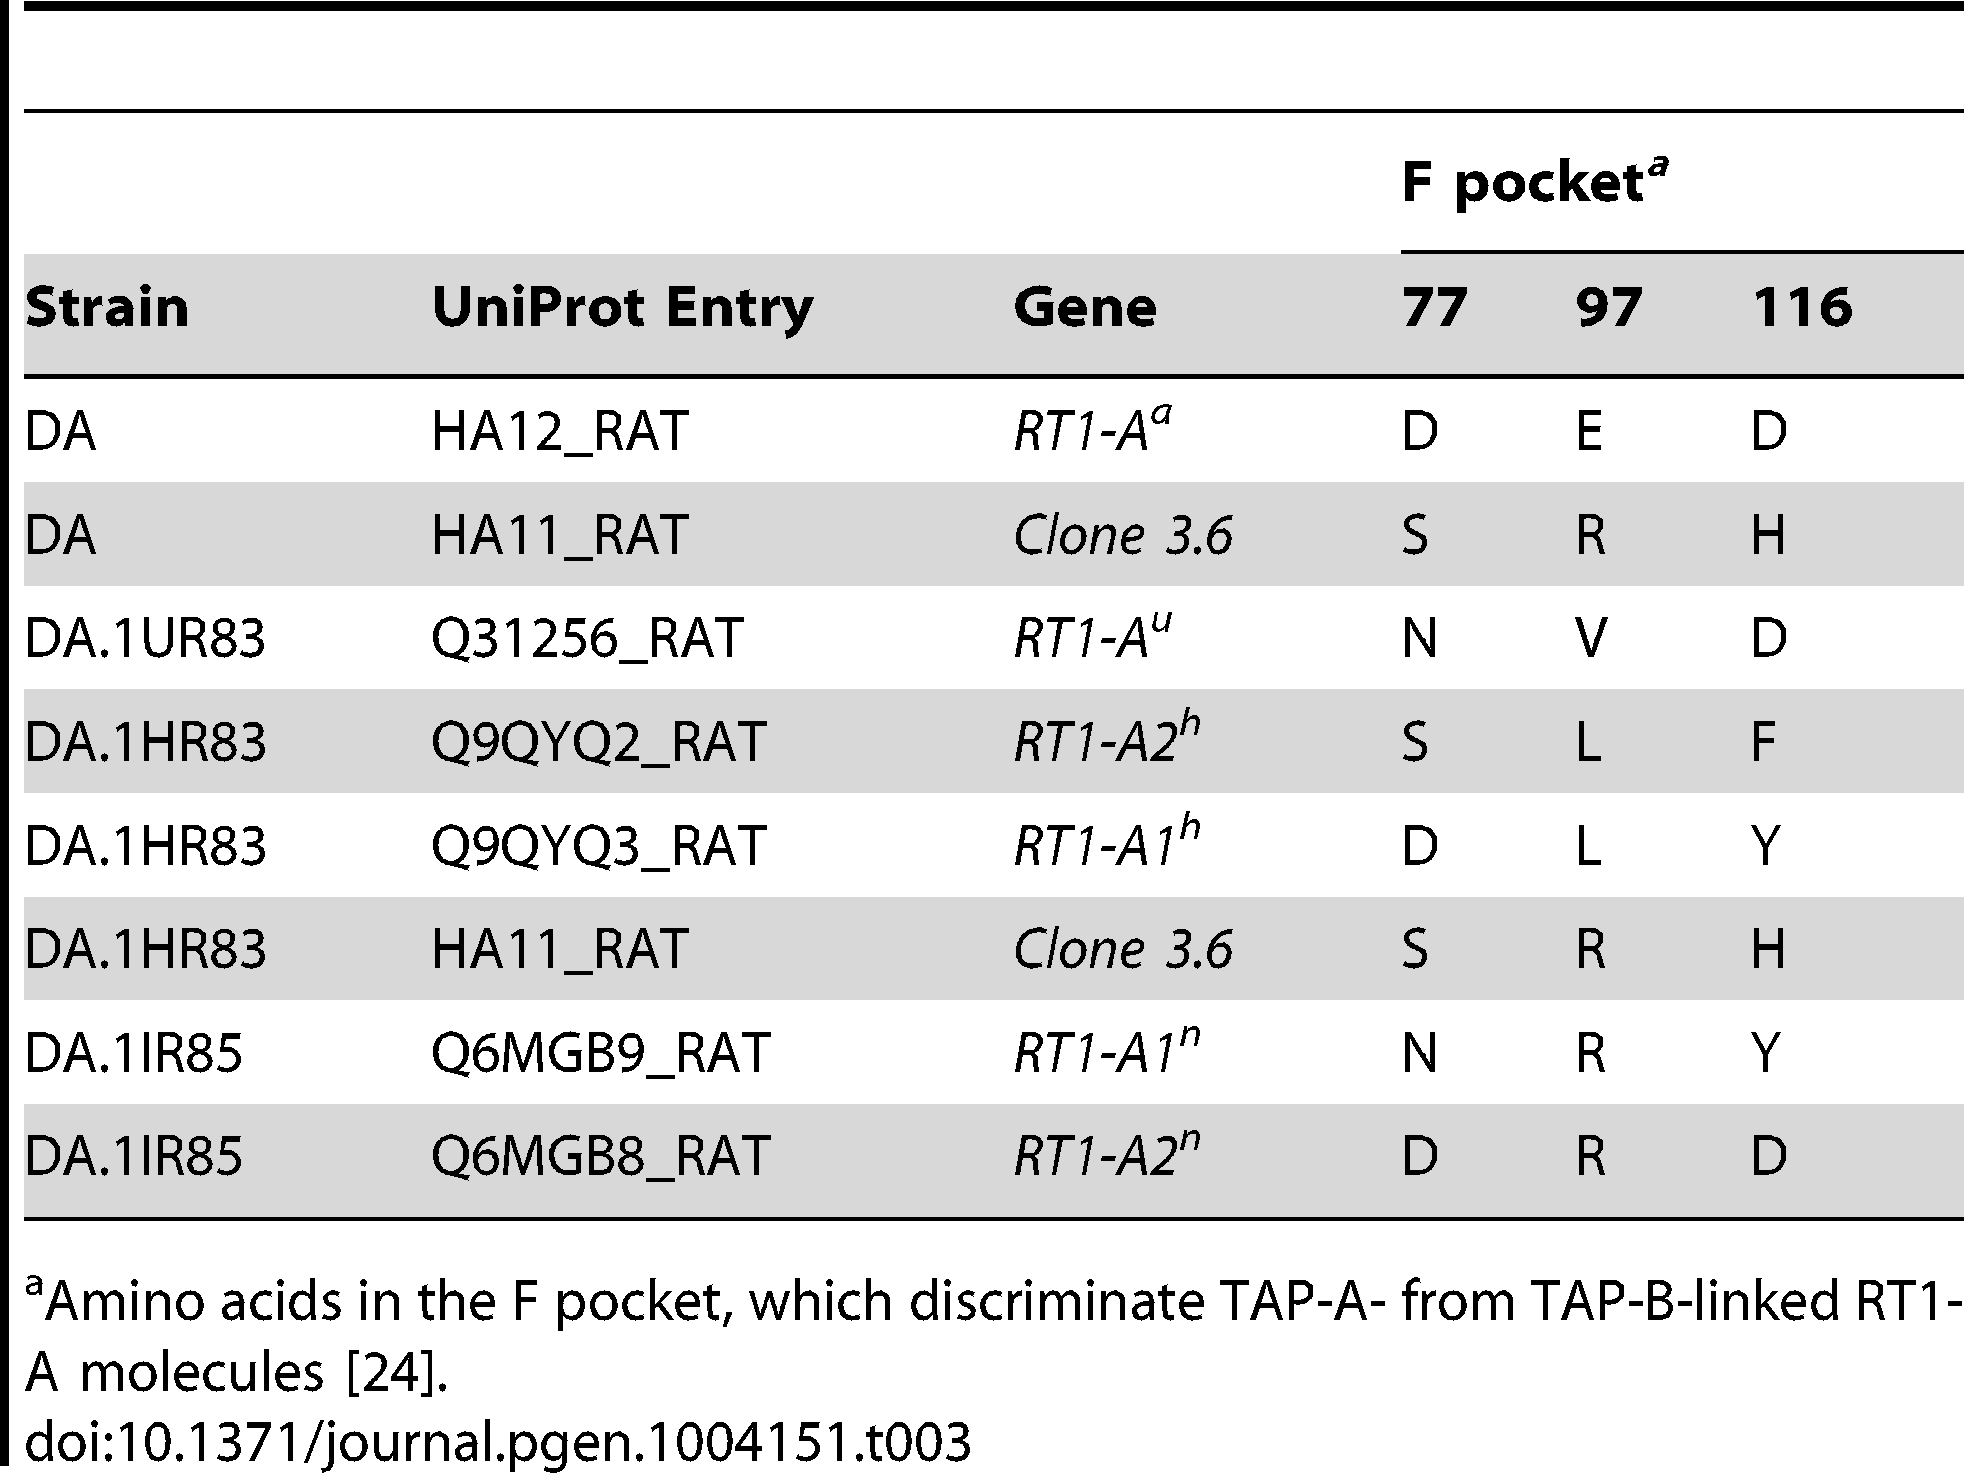 MHC class I proteins expressed in splenocytes from DA and <i>Tcs1</i>-congenic strains.